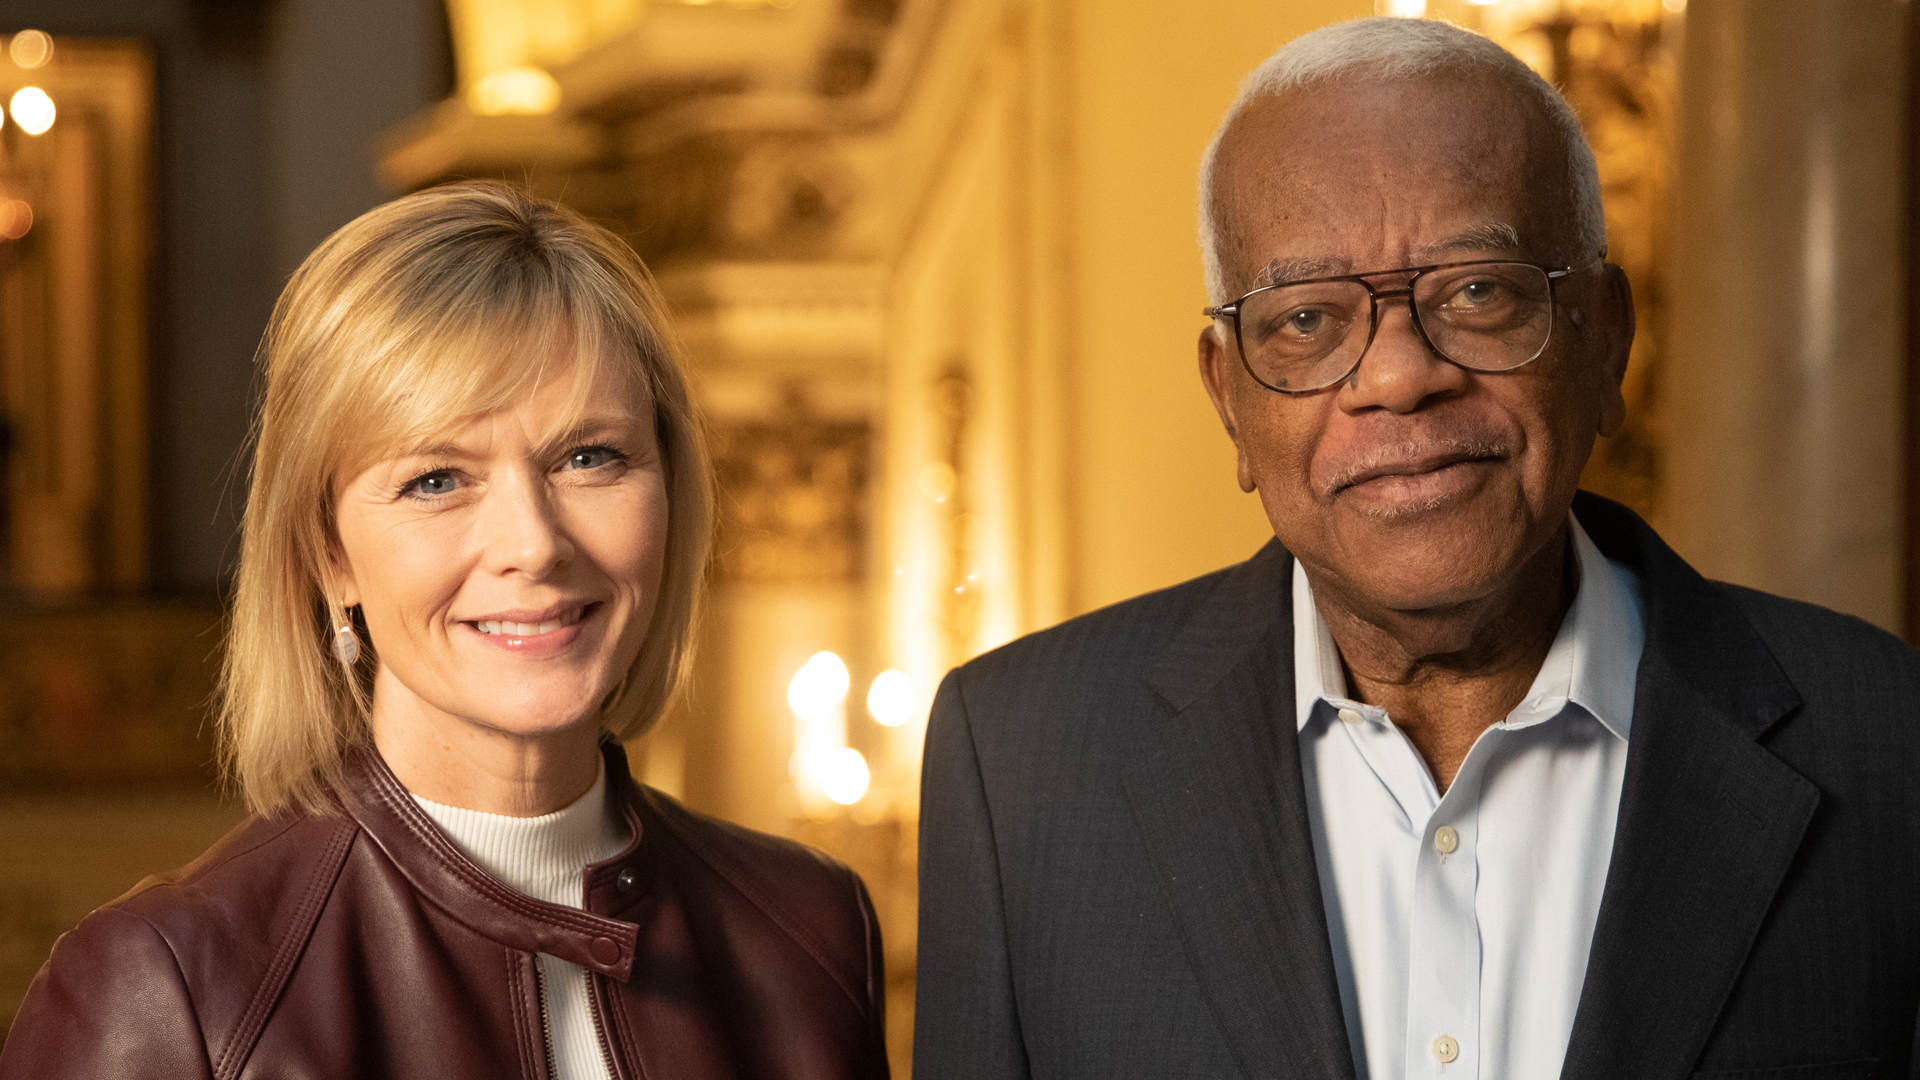 Trevor-McDonald-and-Julie-Etchingham.jpg